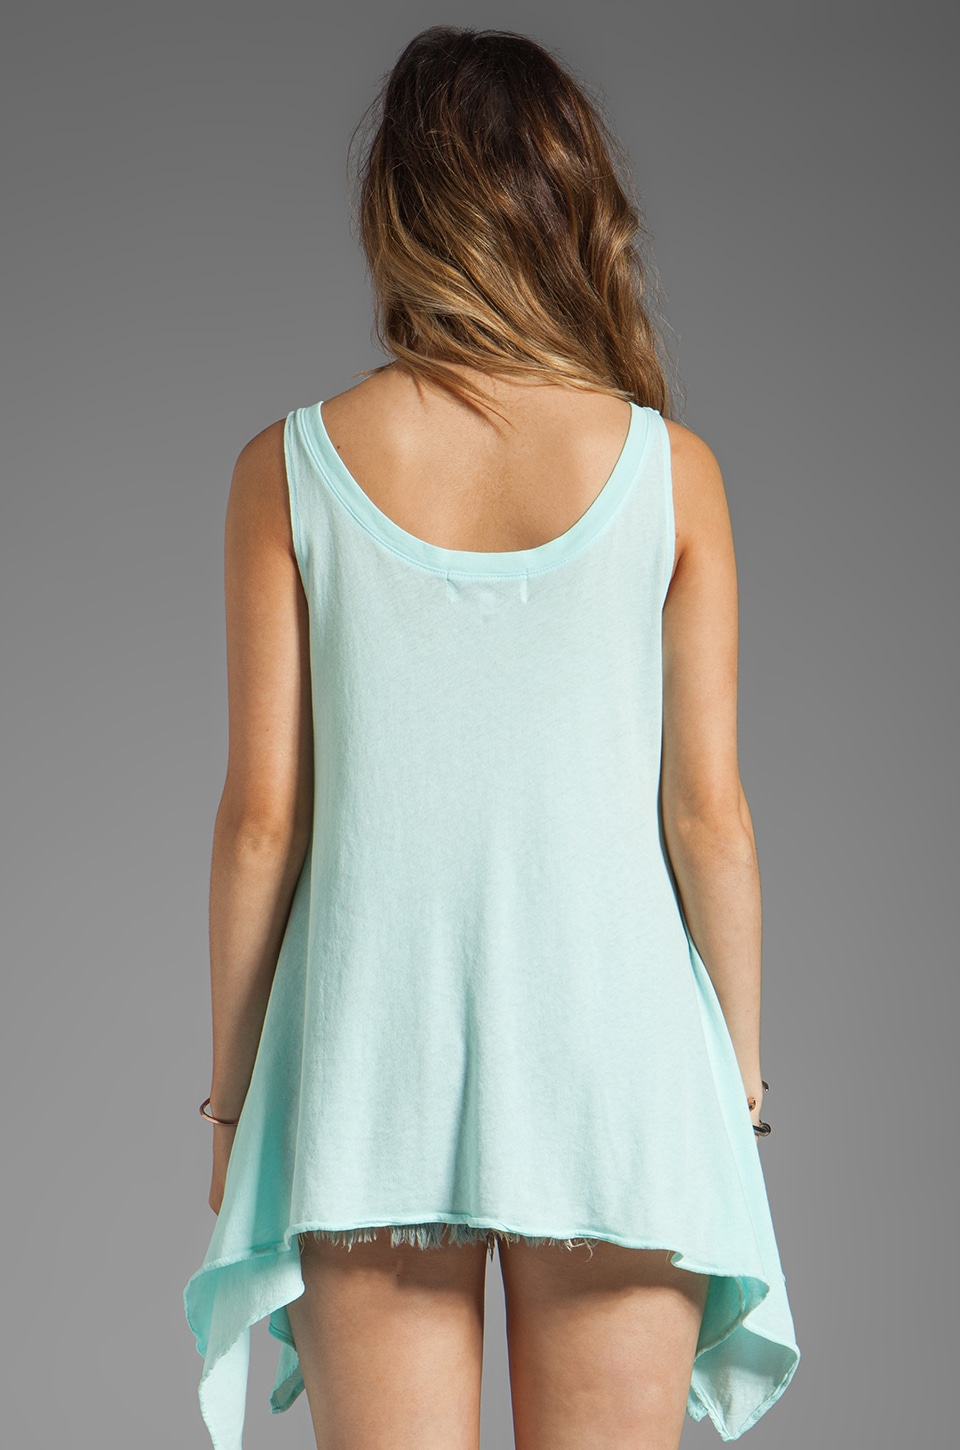 Wildfox Couture Pineapple Dreamer Tank in Bleached Aqua